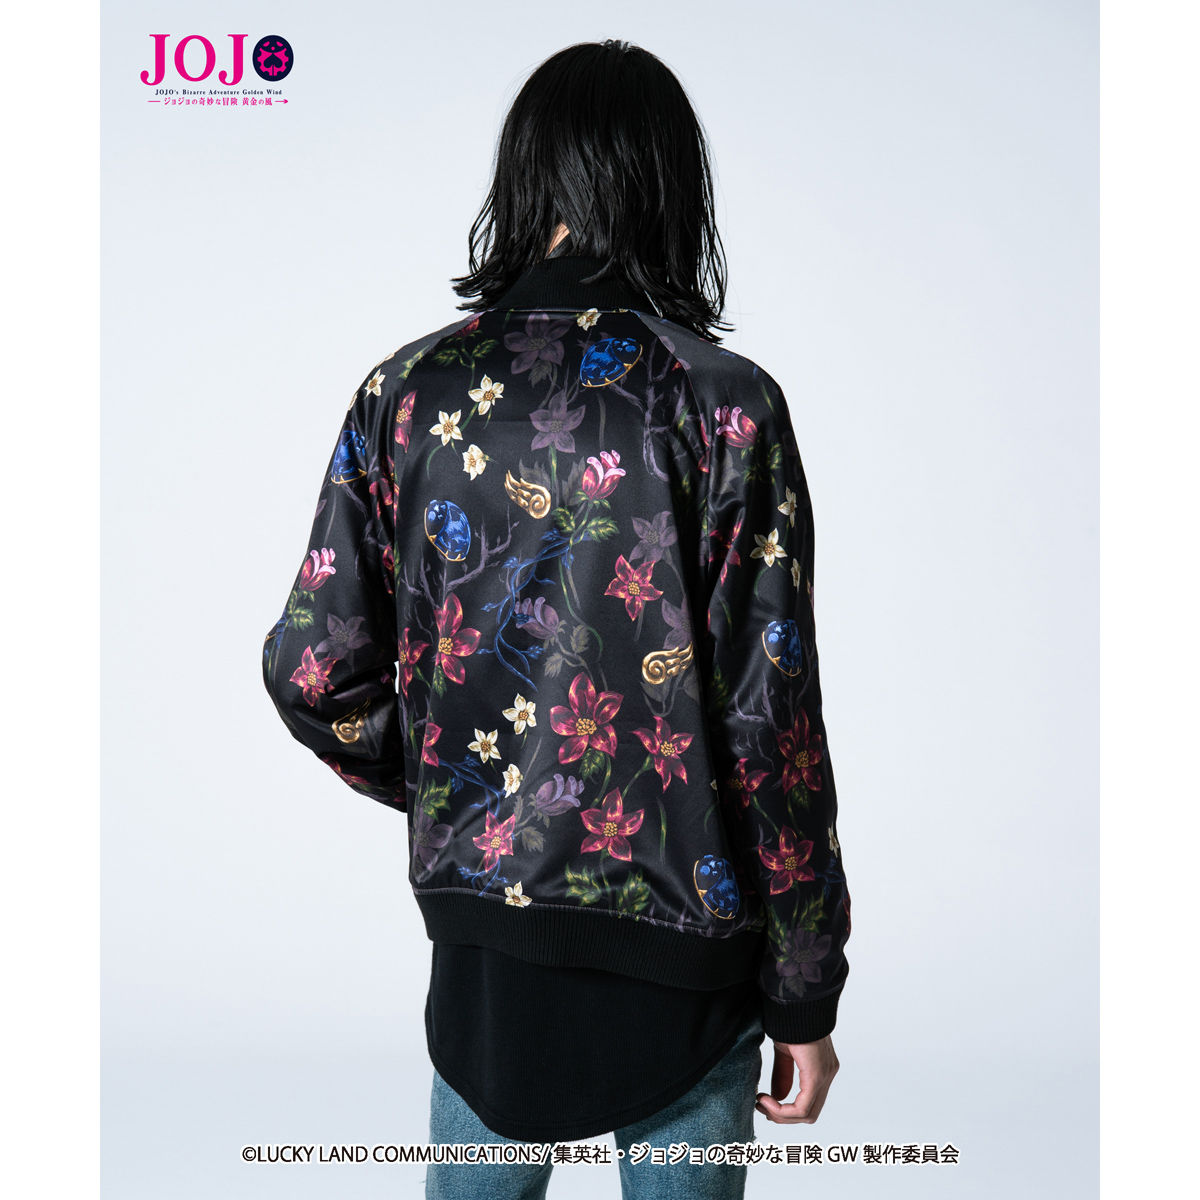 JoJo's Bizarre Adventure: Golden Wind  × glamb  collaboration Souvenir jacket